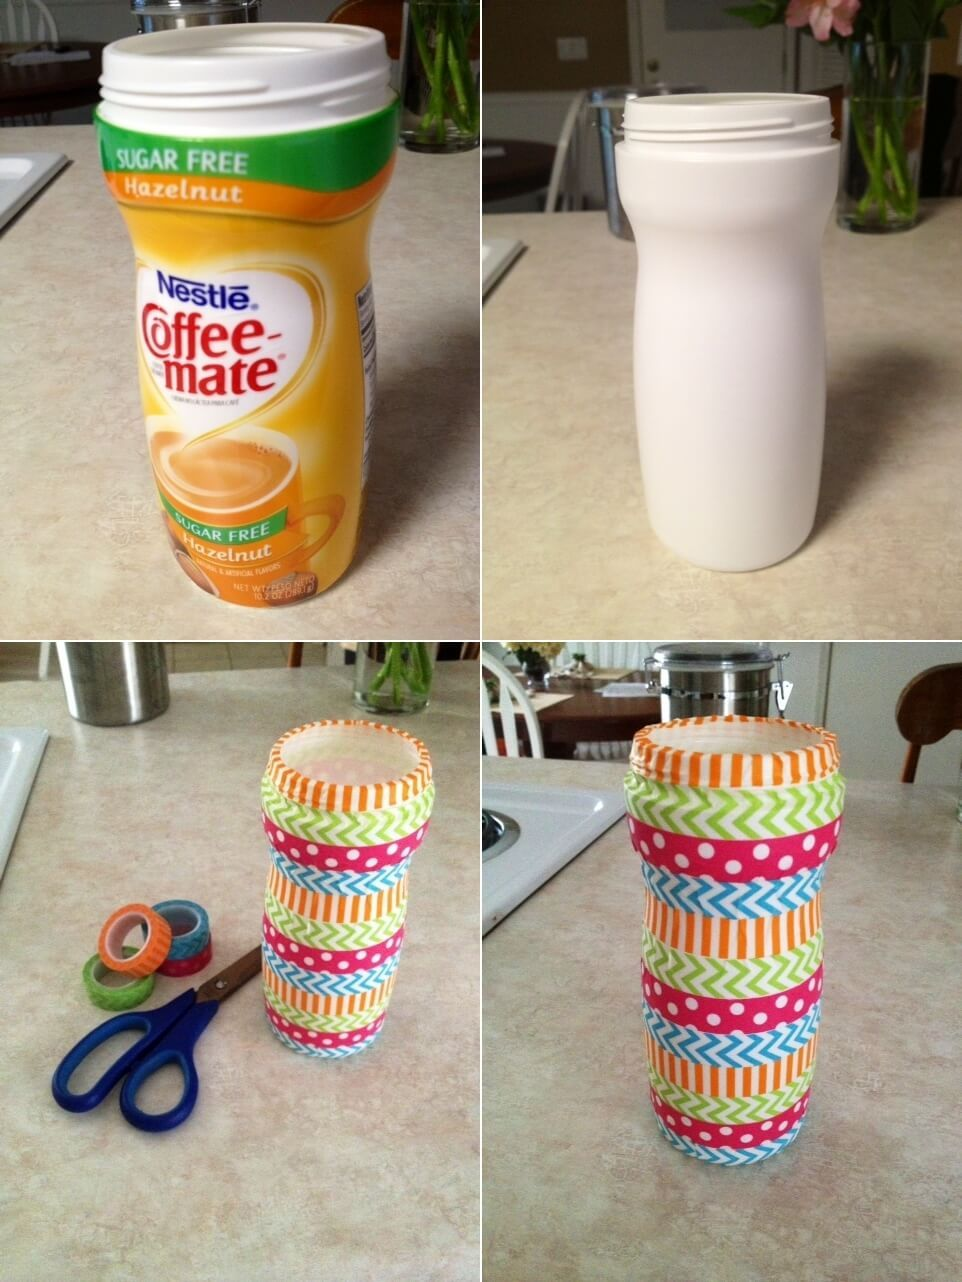 What To Do With Old Coffee Creamer Bottles? Coffee